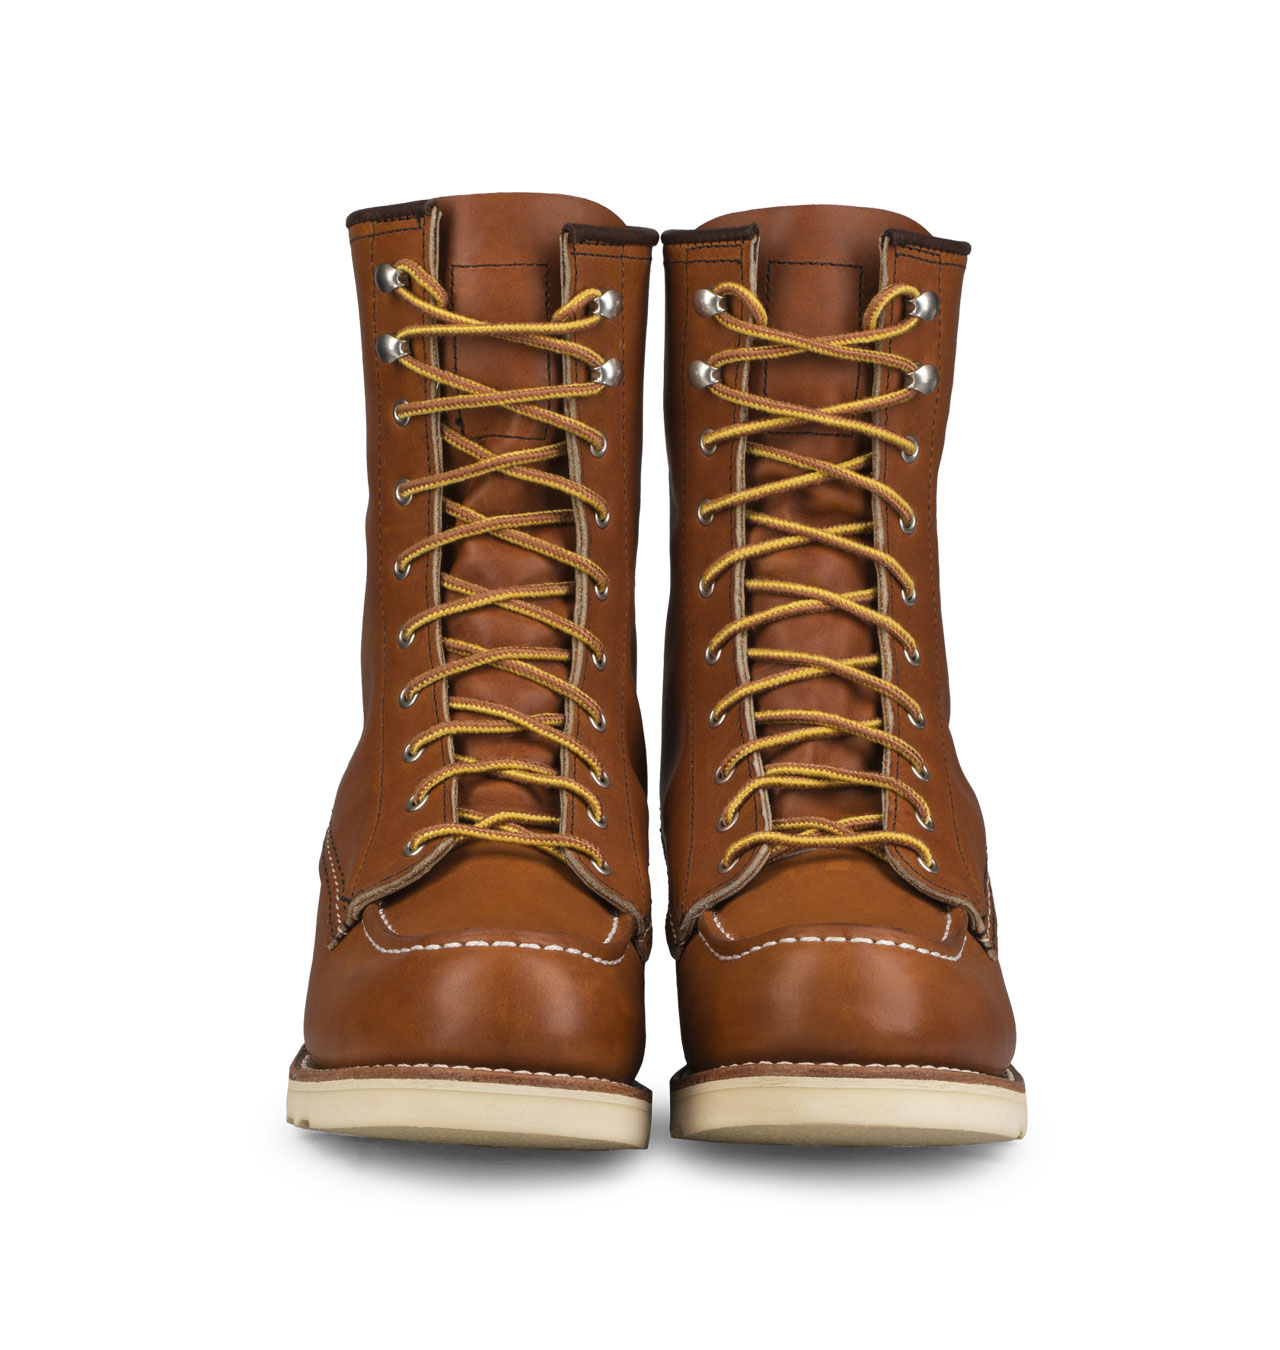 f681302ad17 Red Wing Shoes Woman Style No 3427 8-inch Moc Toe - Oro Legacy Leather